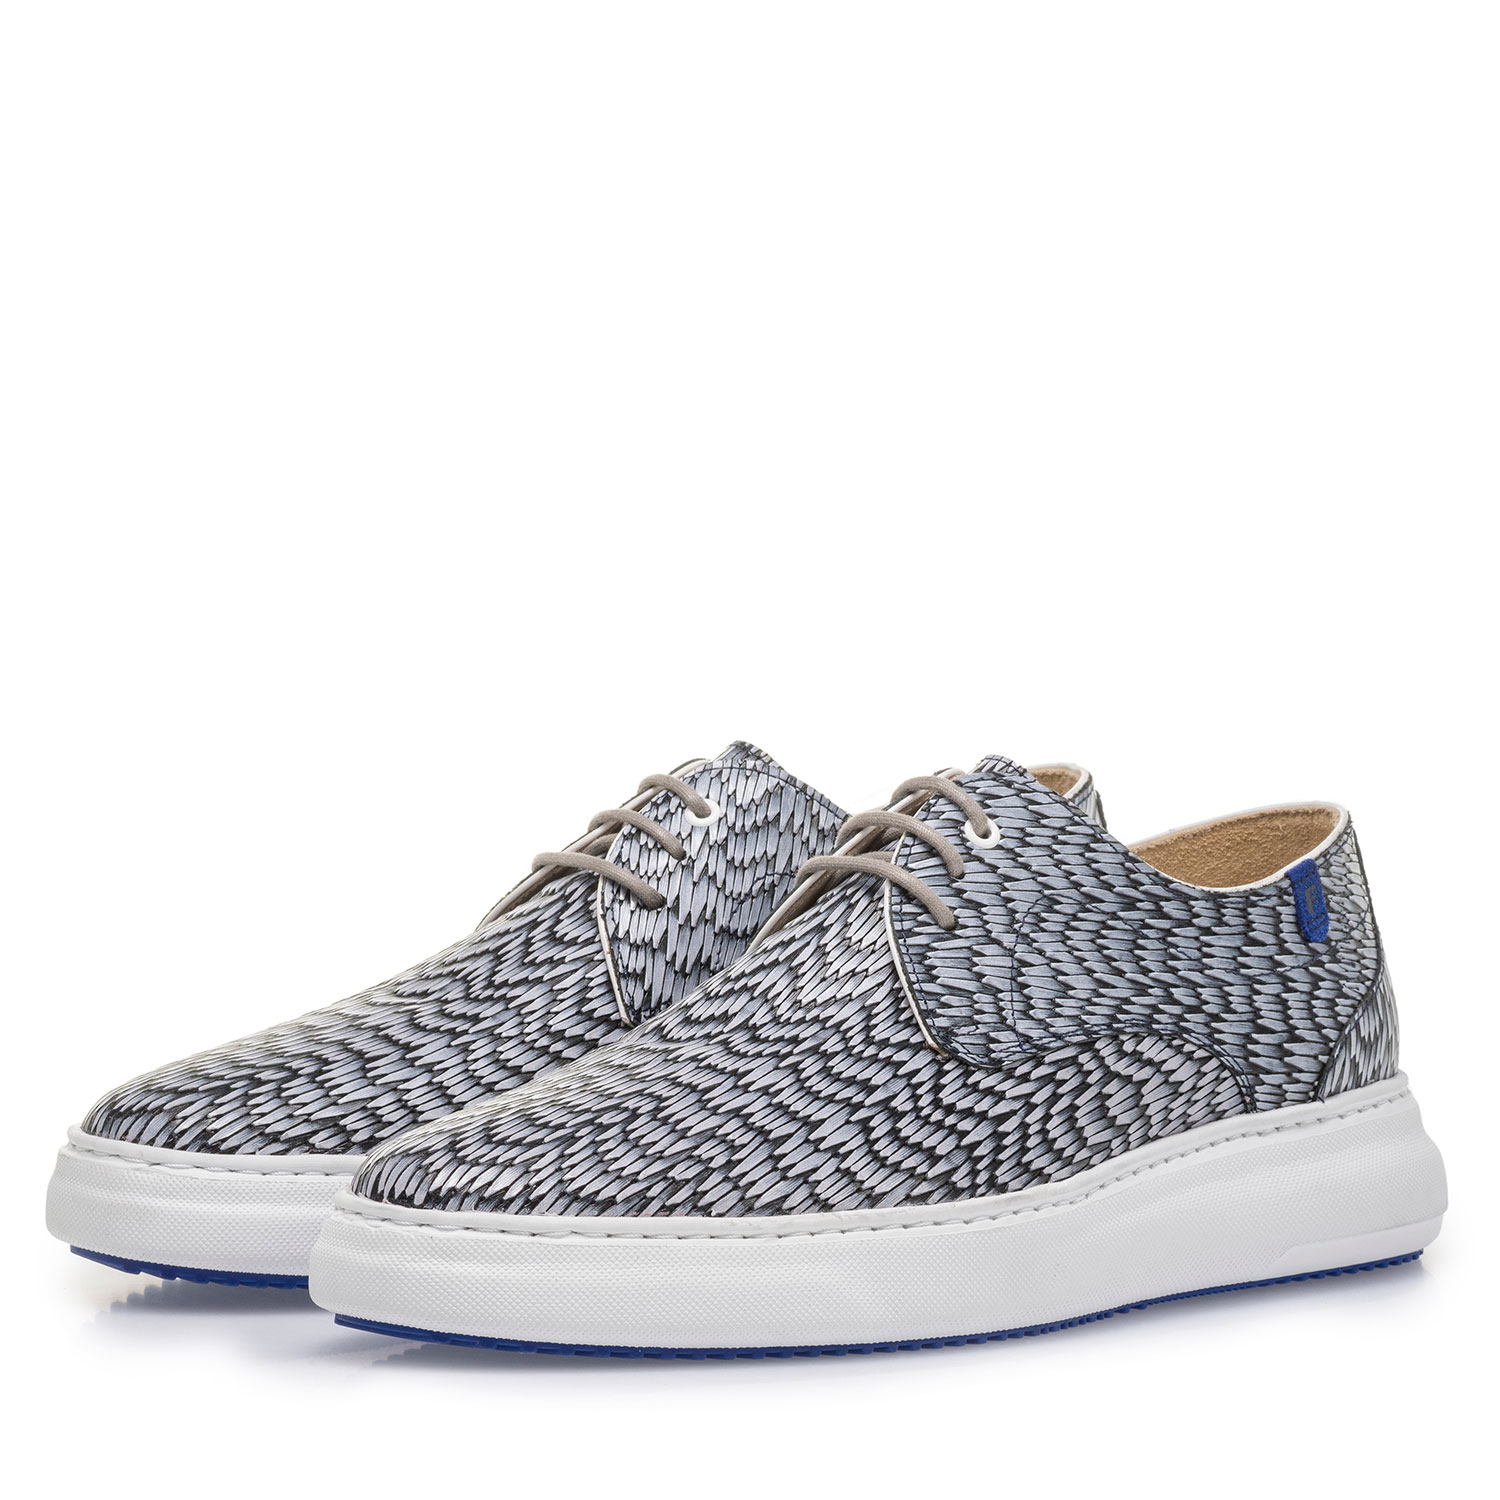 18400/10 - Grey leather lace shoe with print